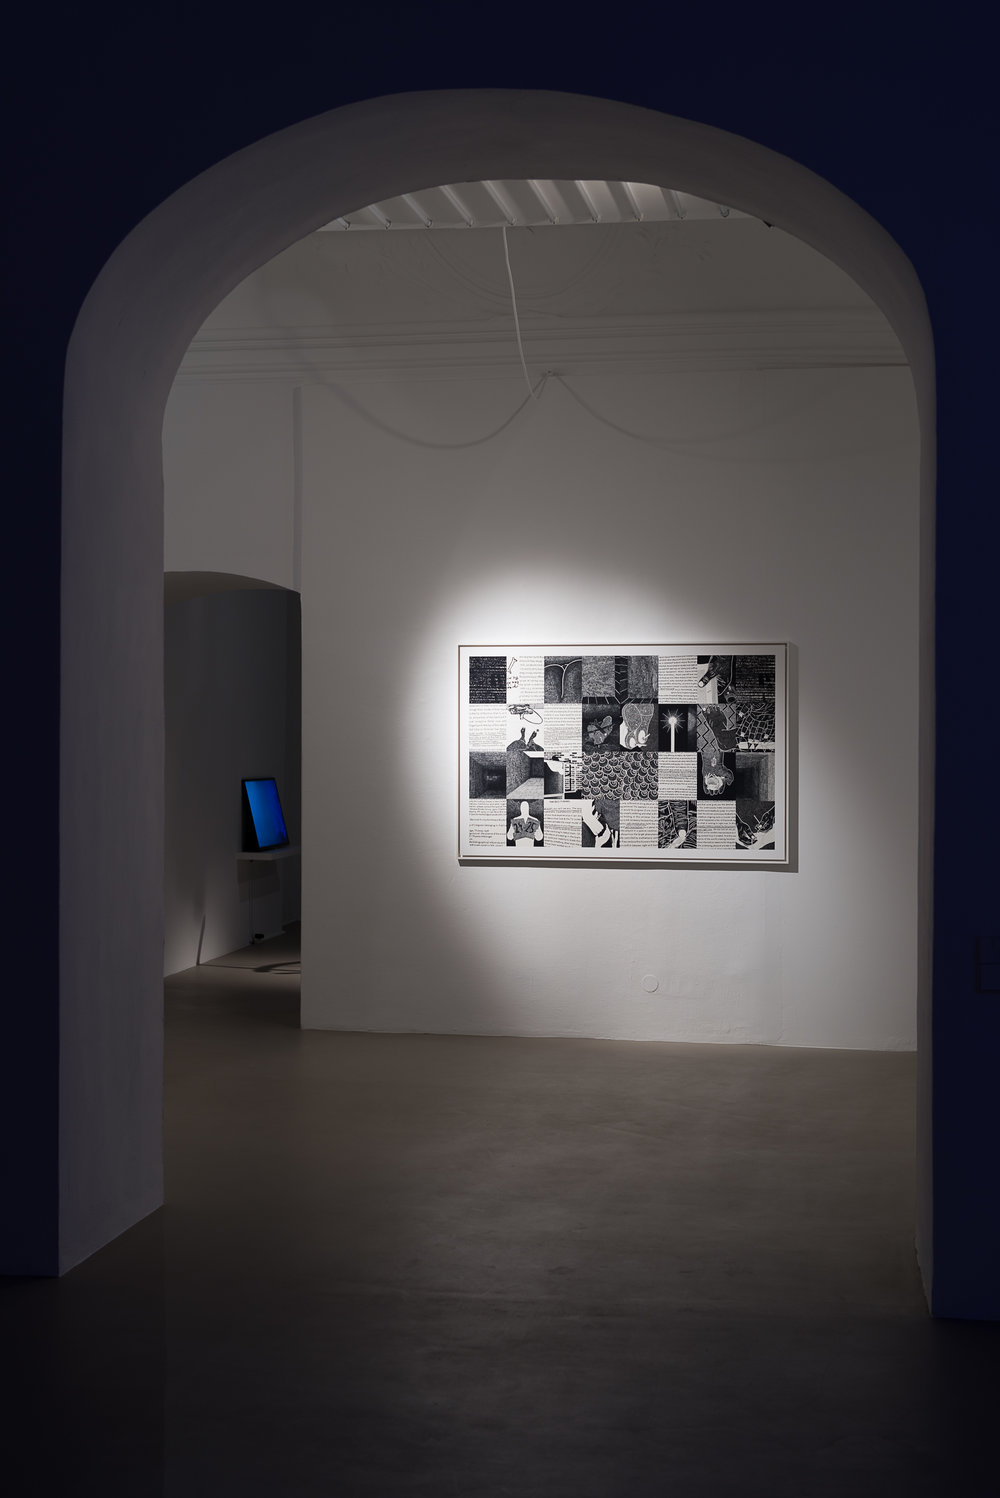 Exhibition View, Charim Galerie, curated by_Bassam El Baroni, 2016, Photo: Charim Galerie